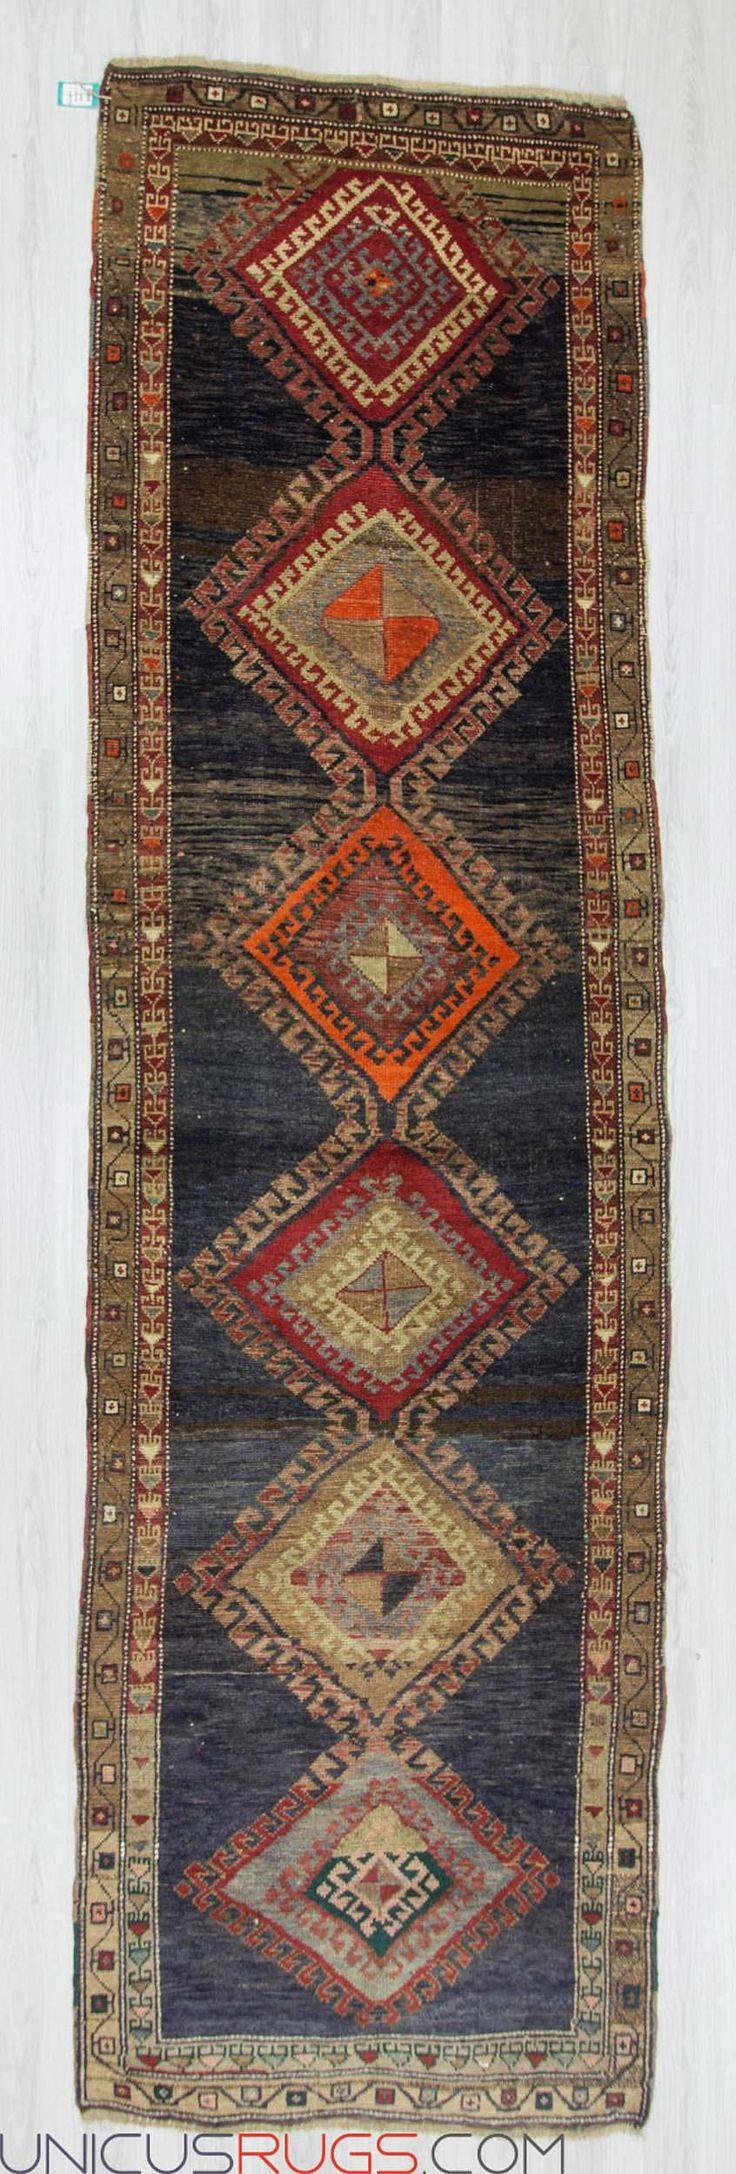 "Antique runner rug from Malatya region of Turkey. In very good condition. Approximately 80-90 years old Width: 4' 0"" - Length: 14' 1"" RUNNERS"